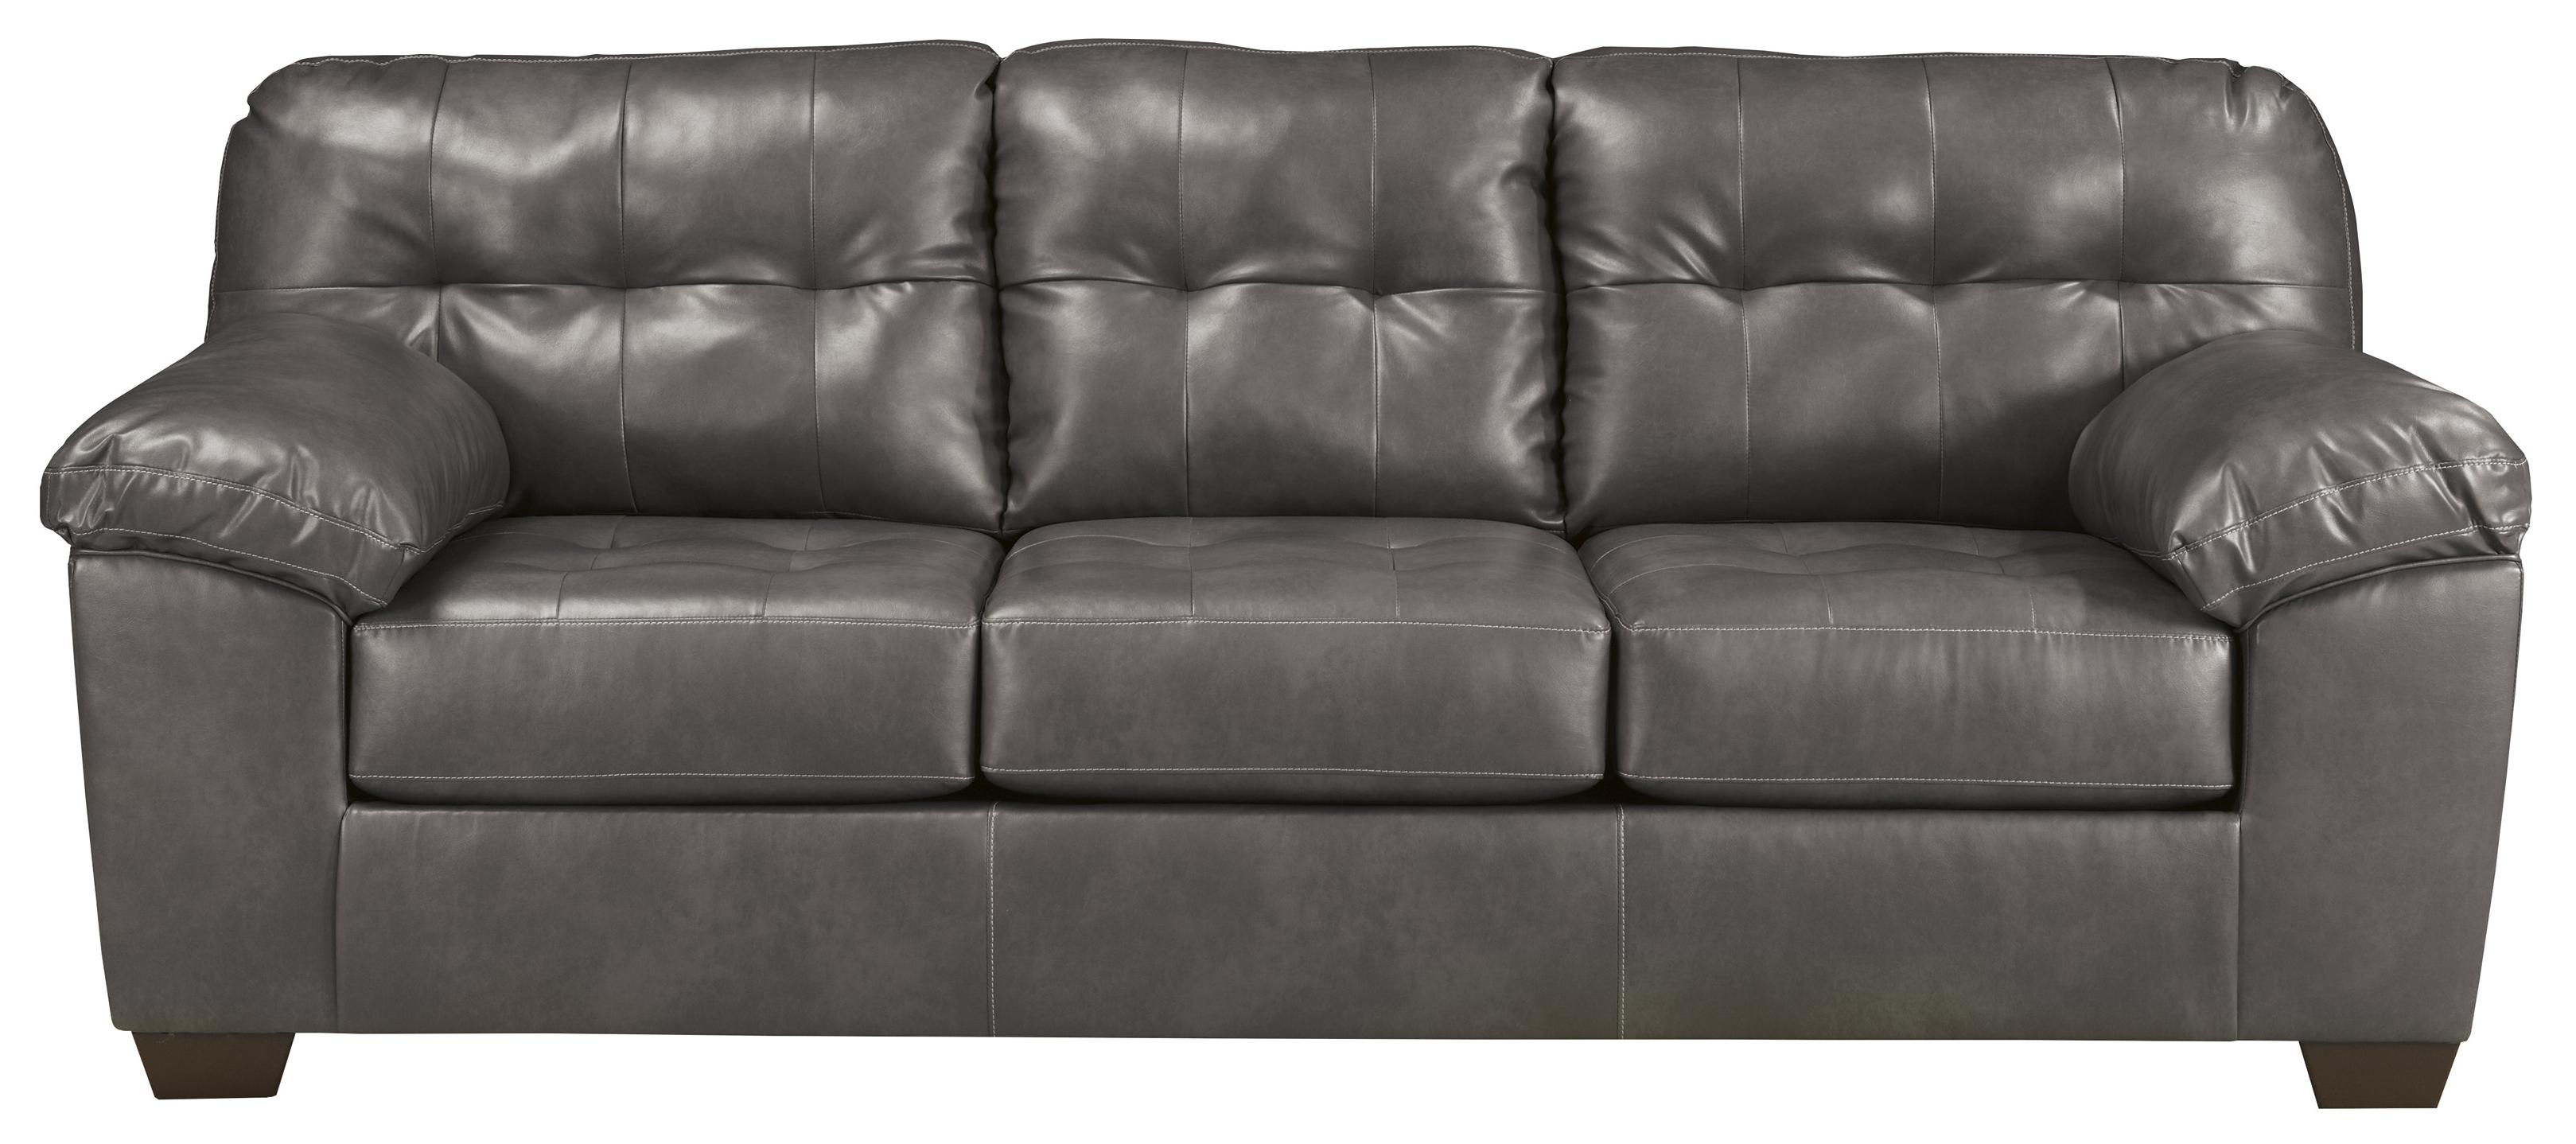 grey leather queen sleeper sofa chesterfield reduced signature design by ashley alliston durablend gray